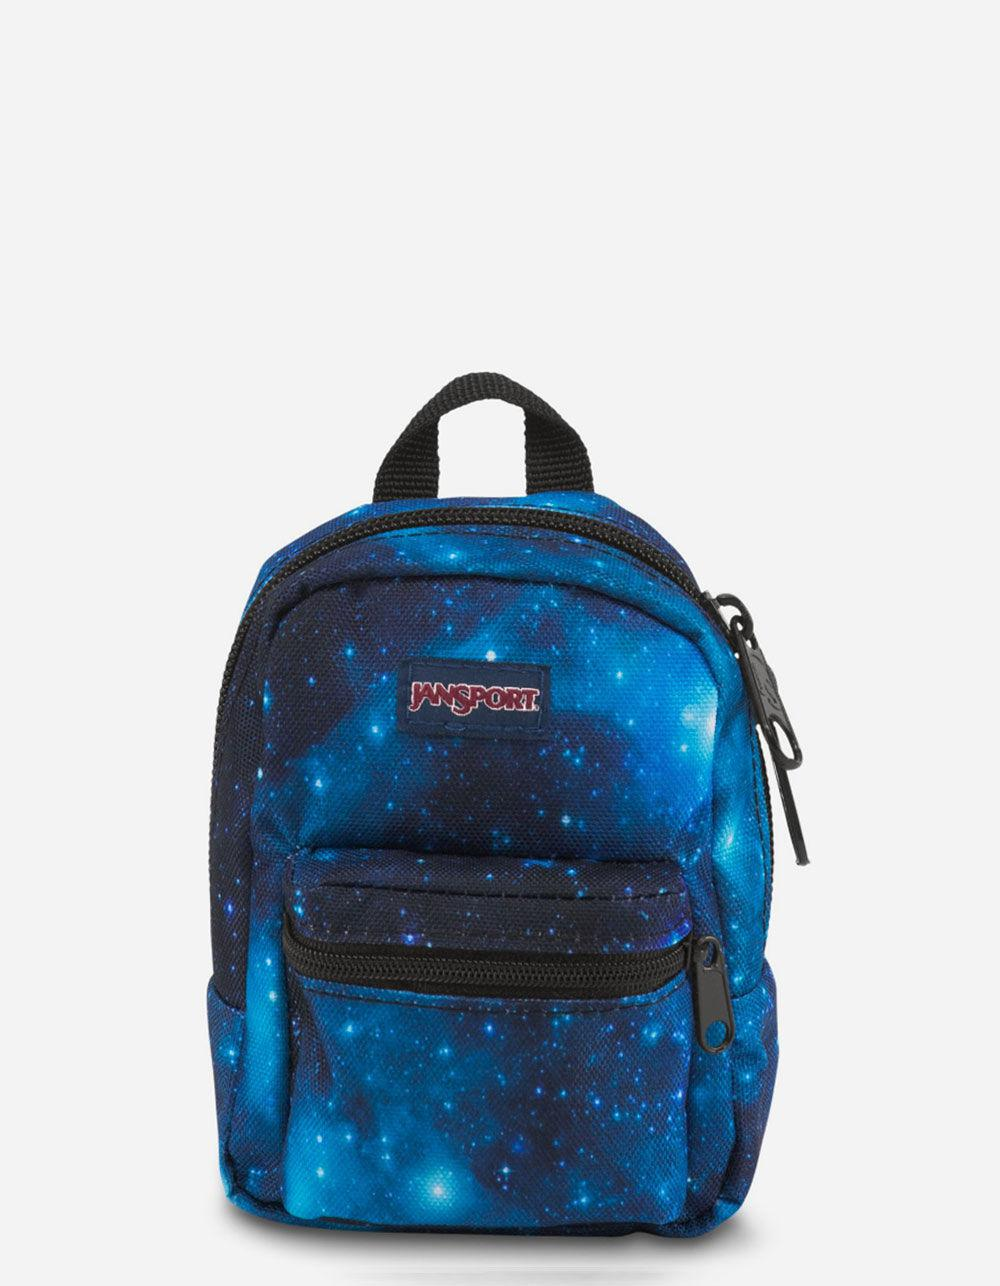 5782424cac28 Blue Galaxy Jansport Backpack- Fenix Toulouse Handball